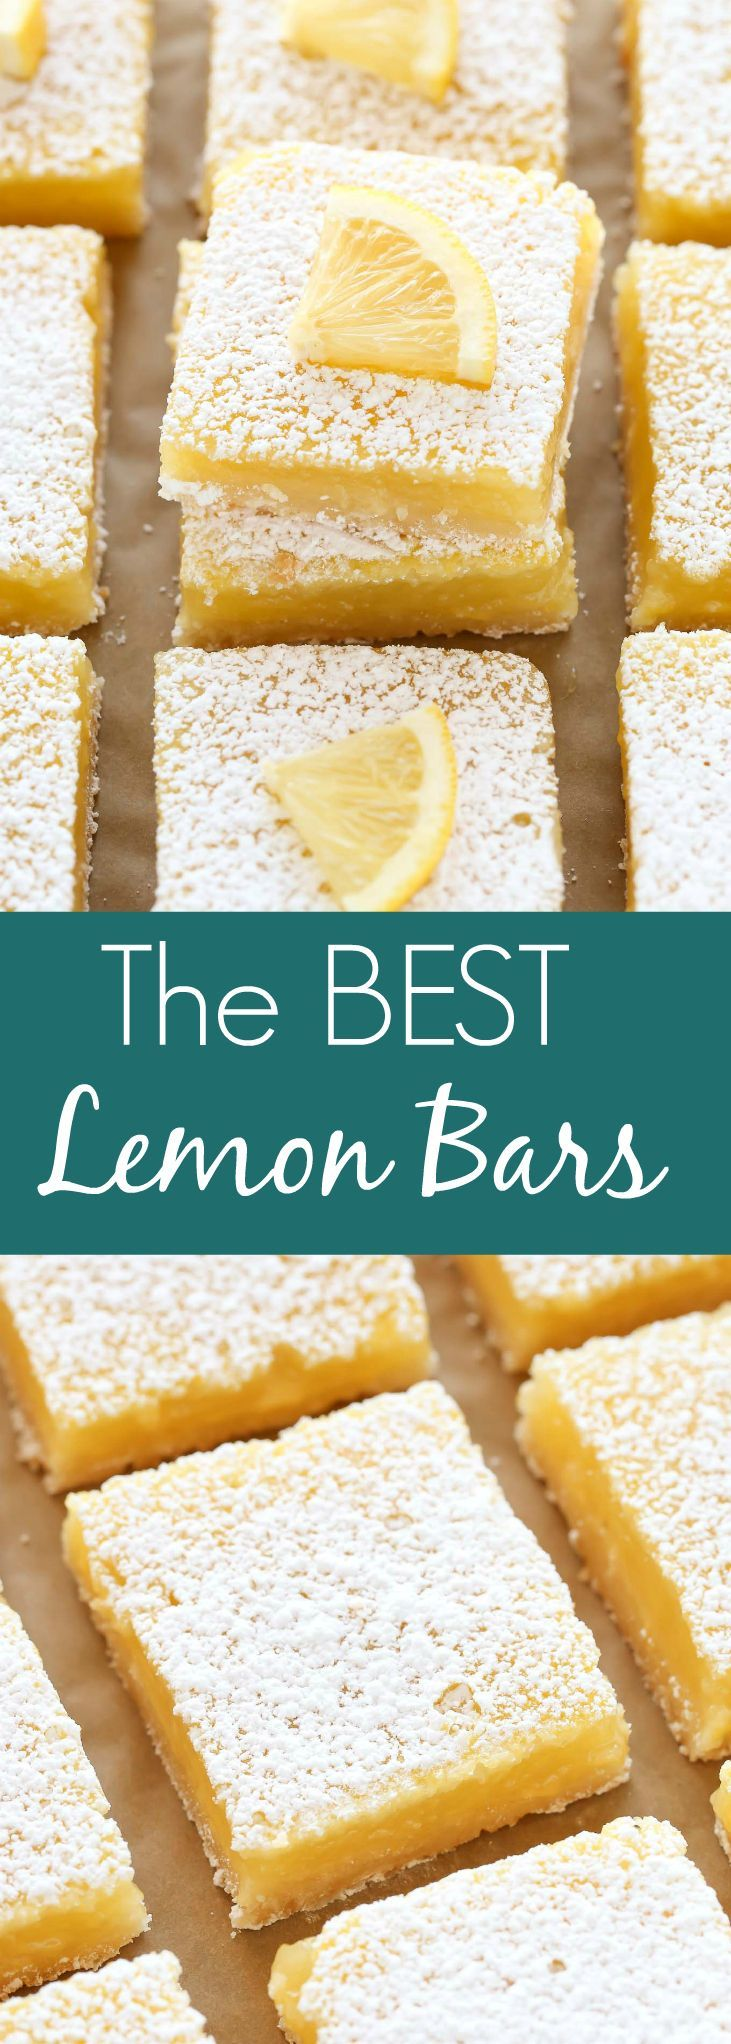 These Classic Lemon Bars feature an easy homemade shortbread crust ...